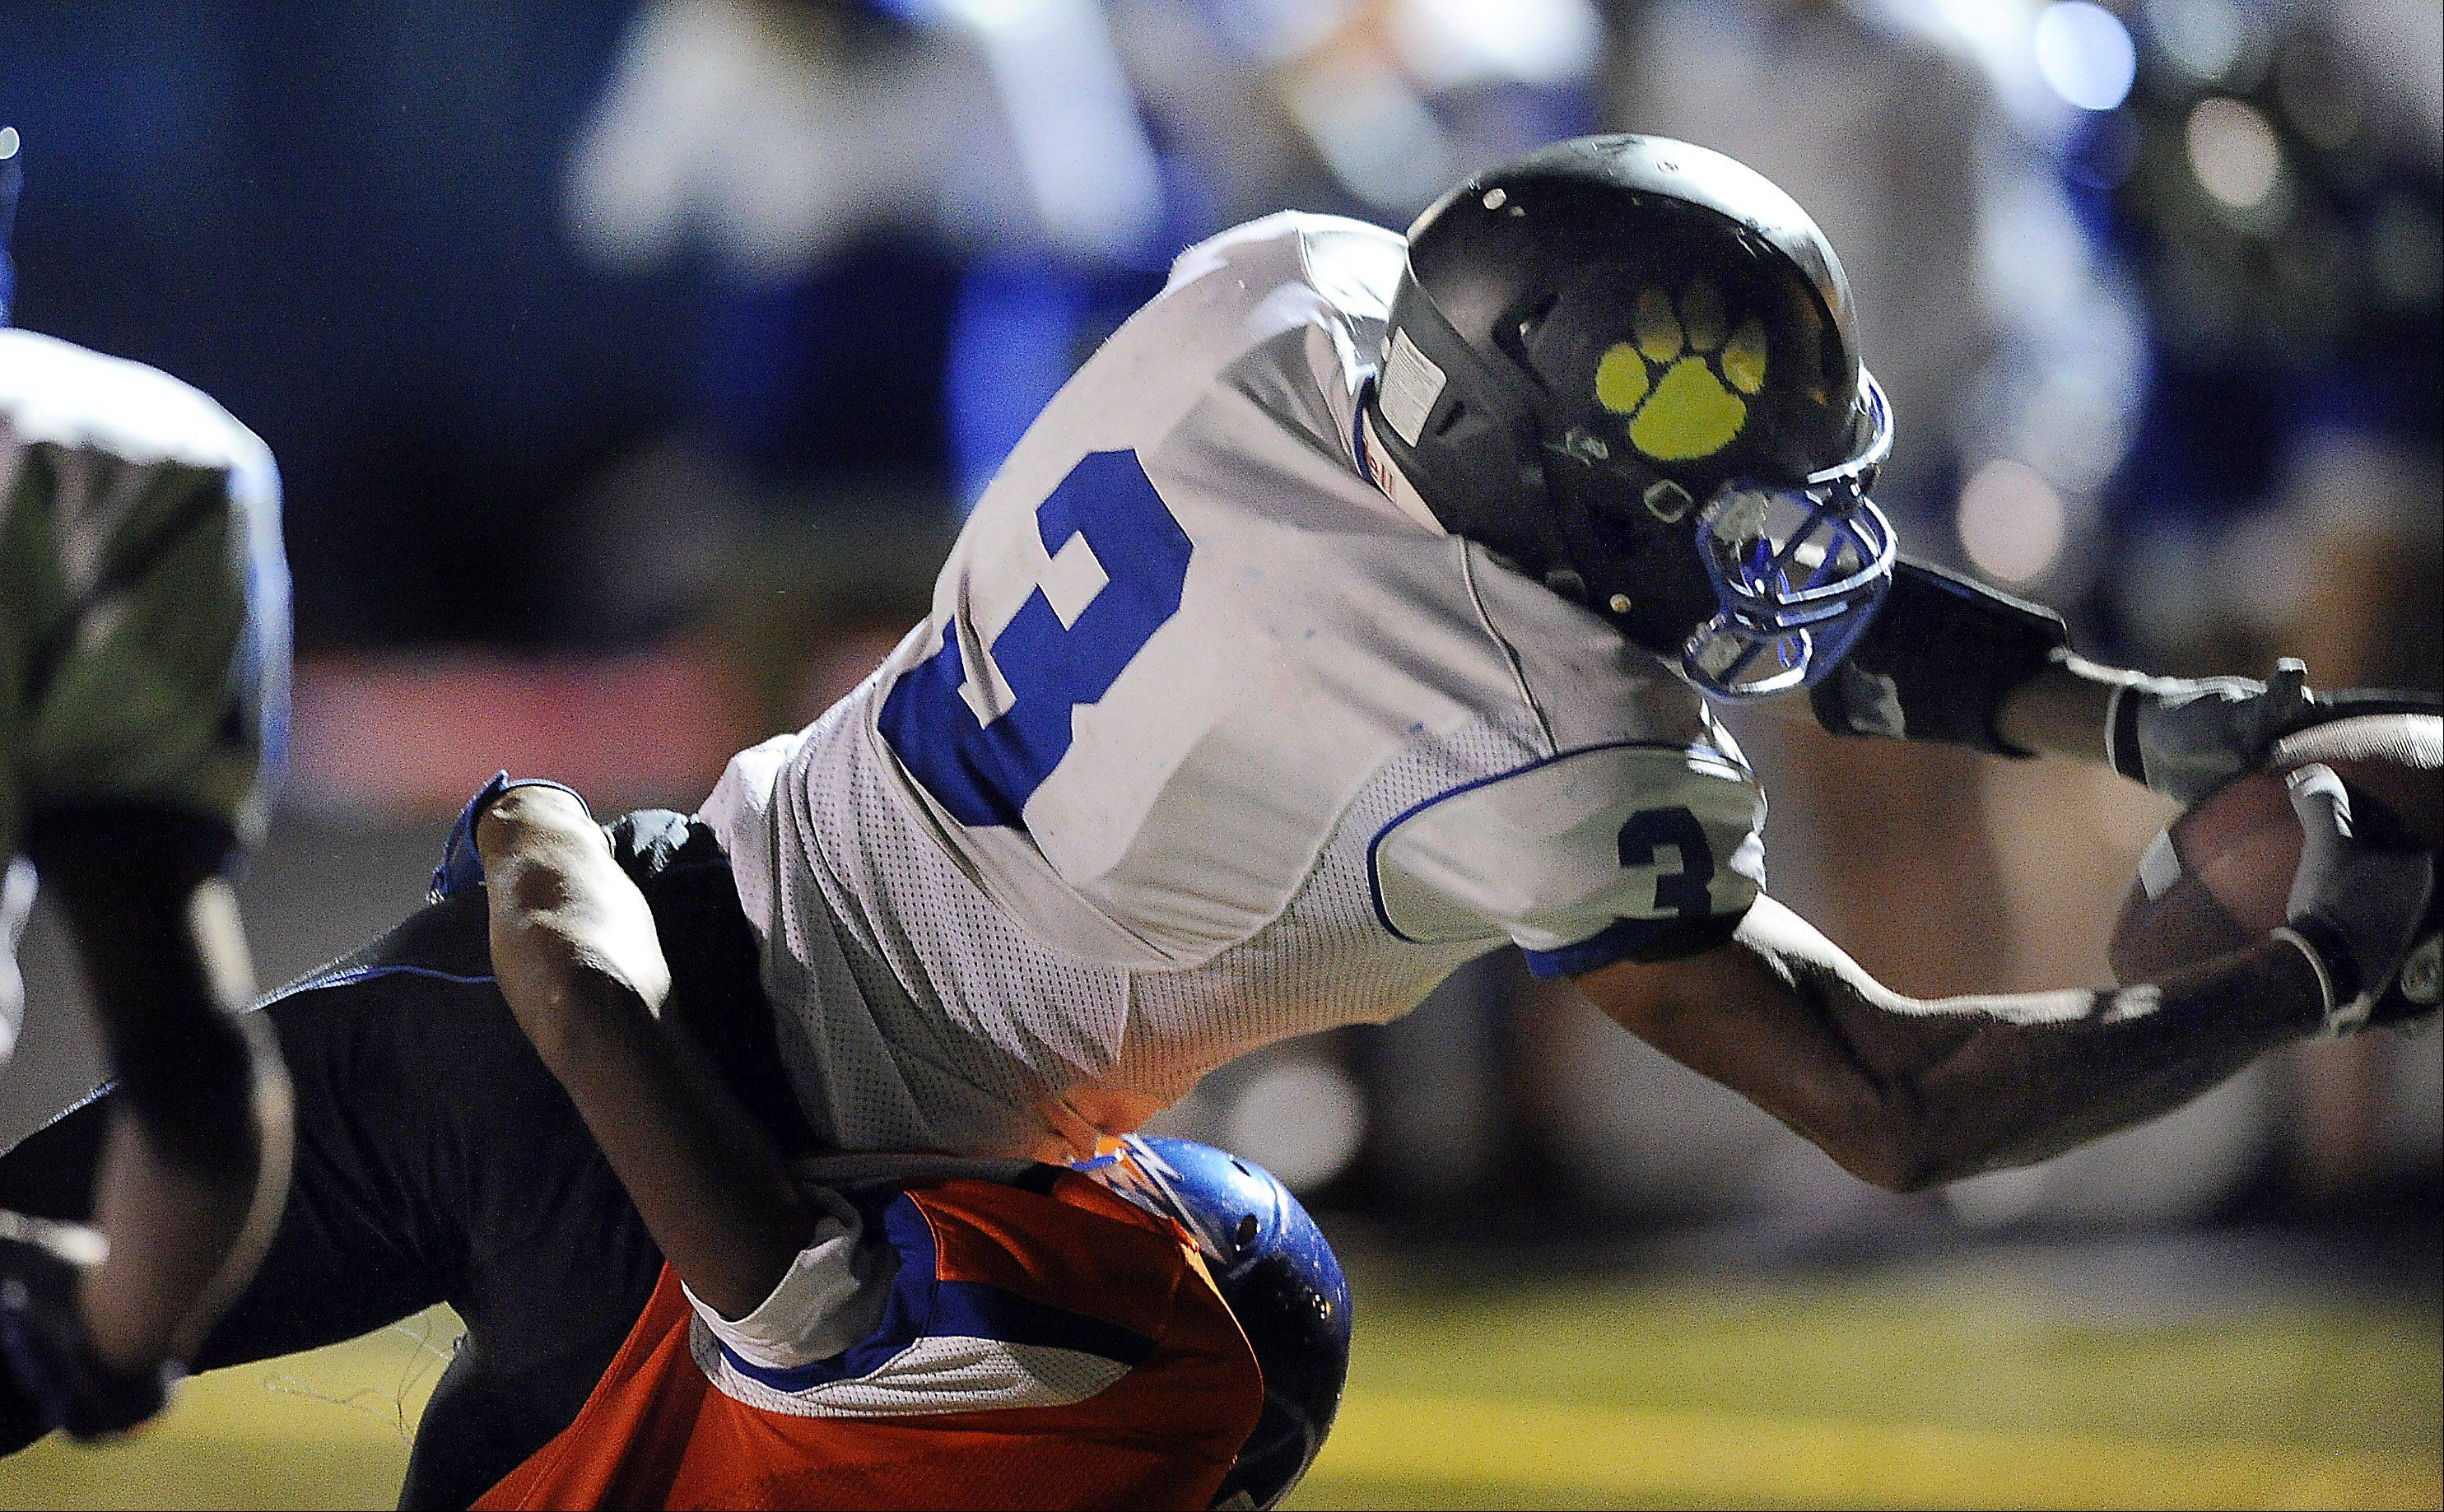 Images: Hoffman Estates vs. Wheeling, football